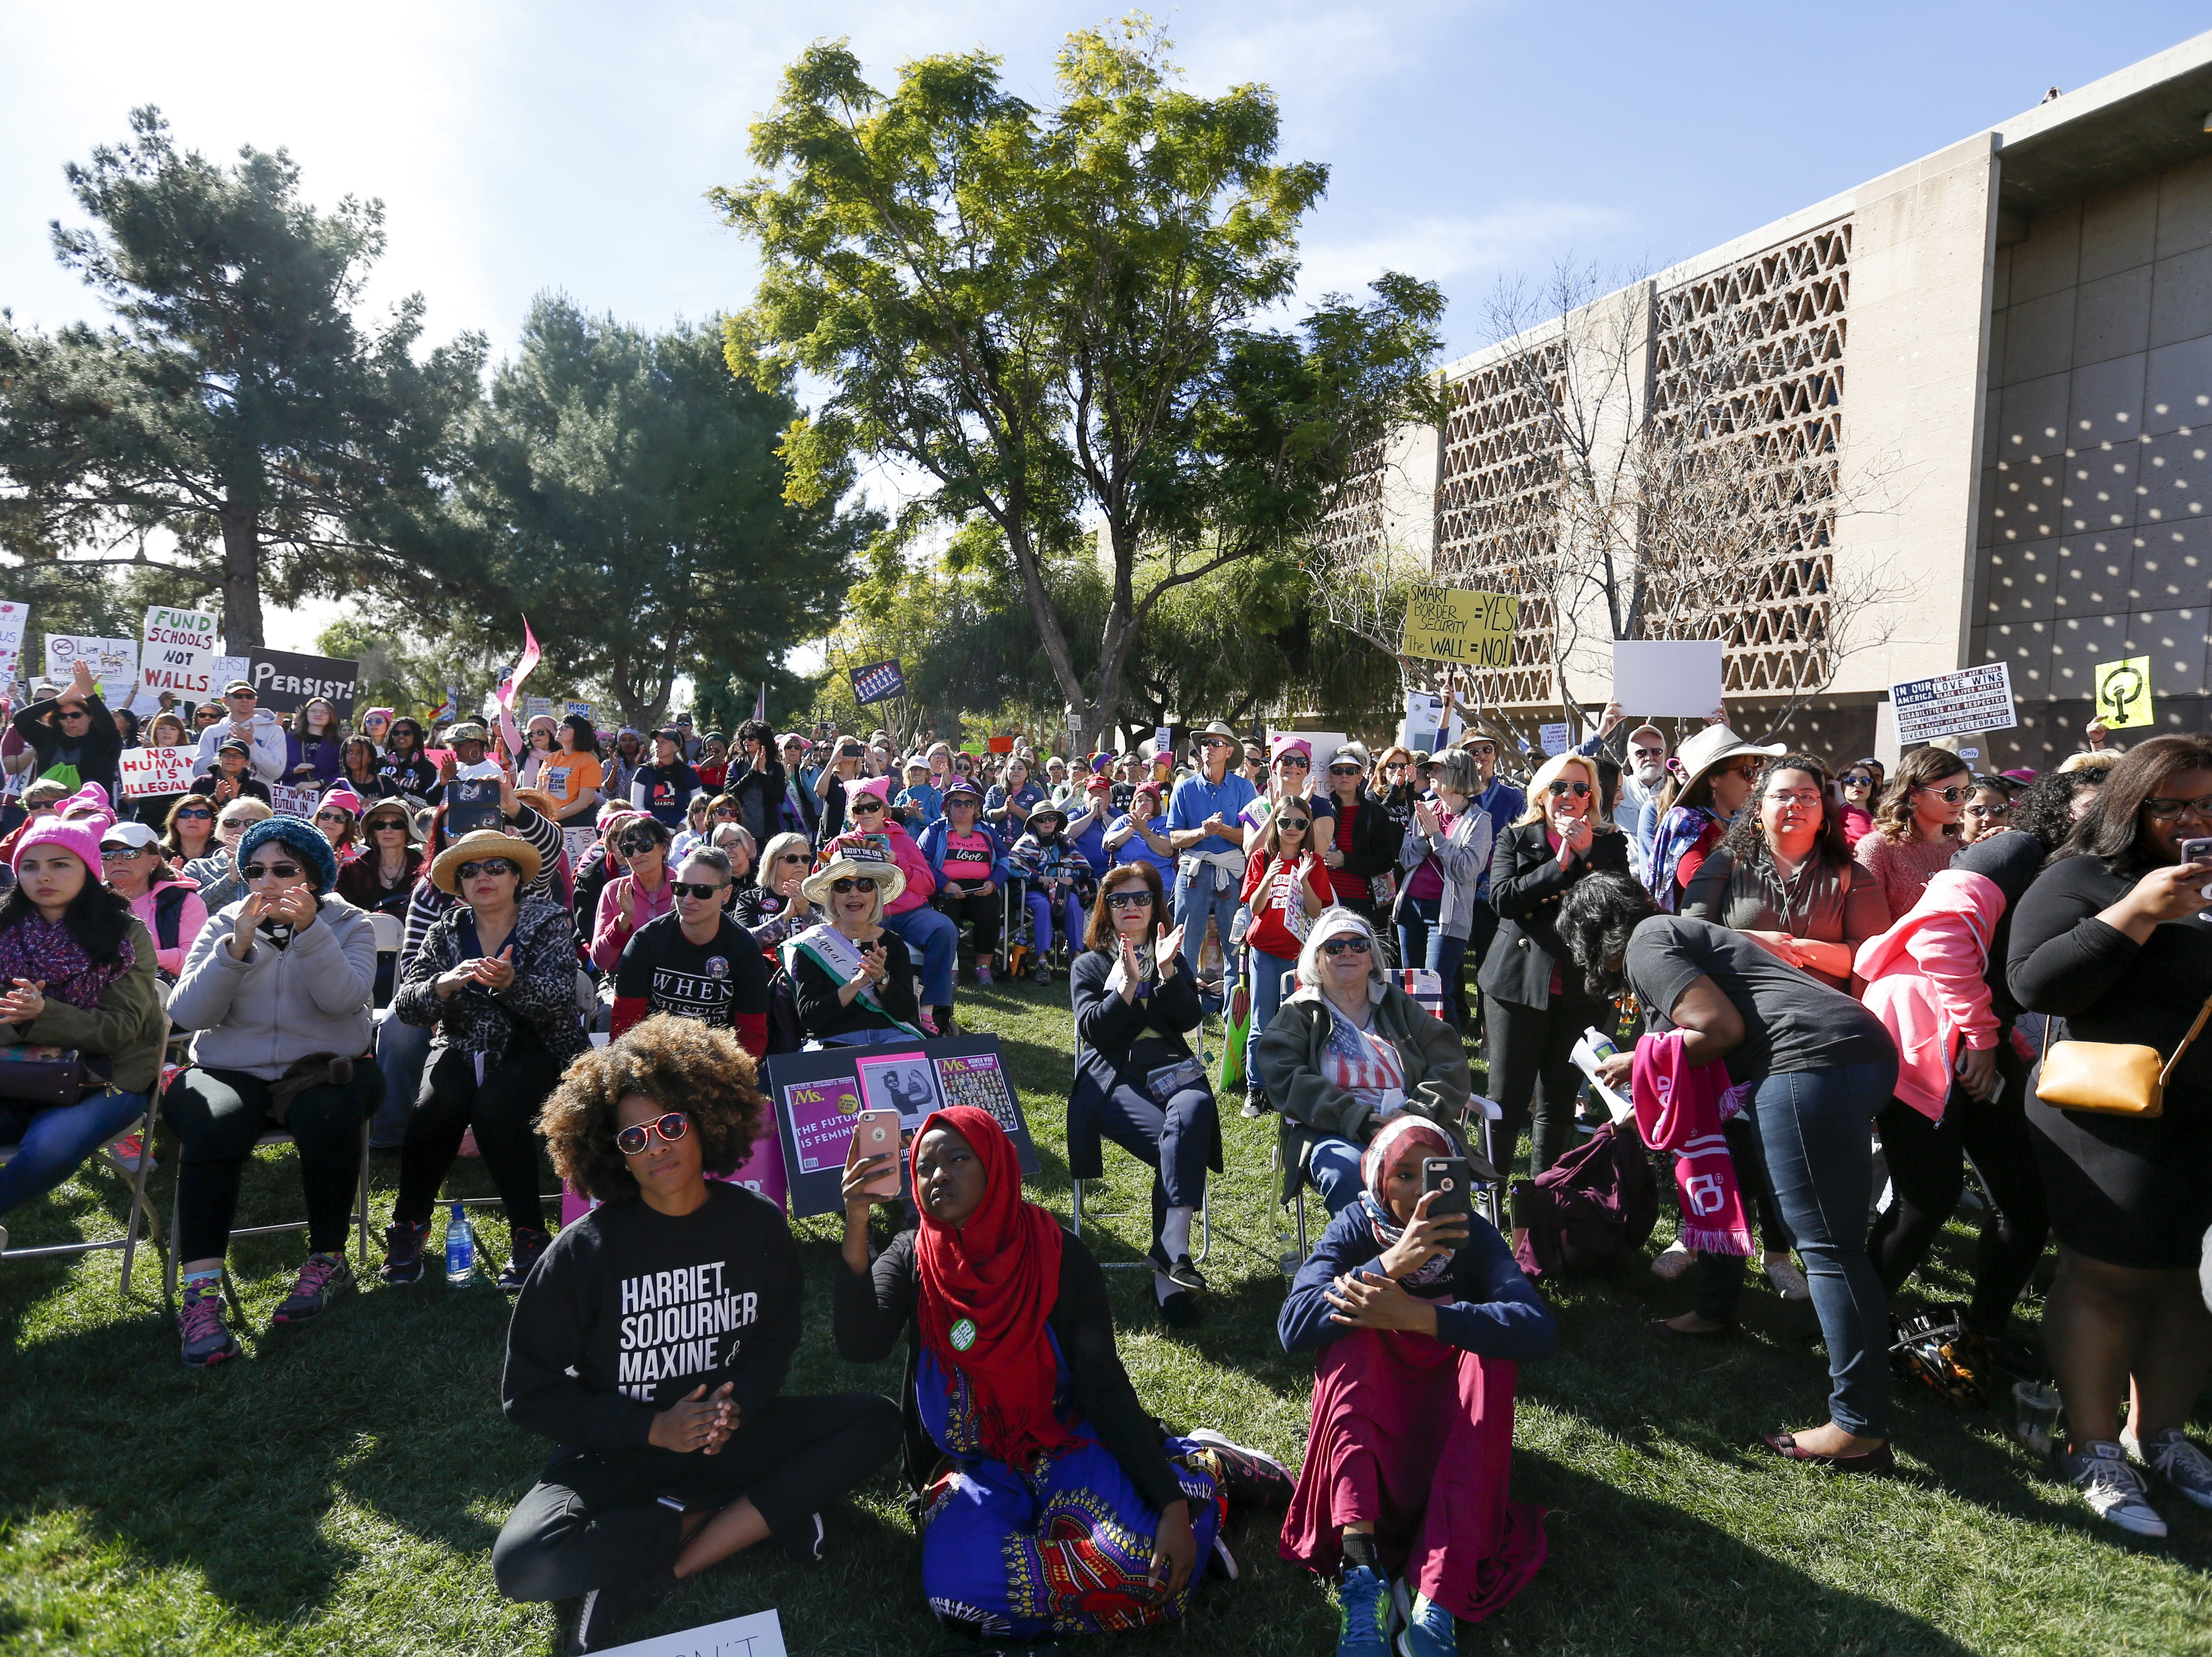 The crowd applauds after the final speaker at the Phoenix Women's March on Jan. 19, 2019, at the Arizona Capitol.